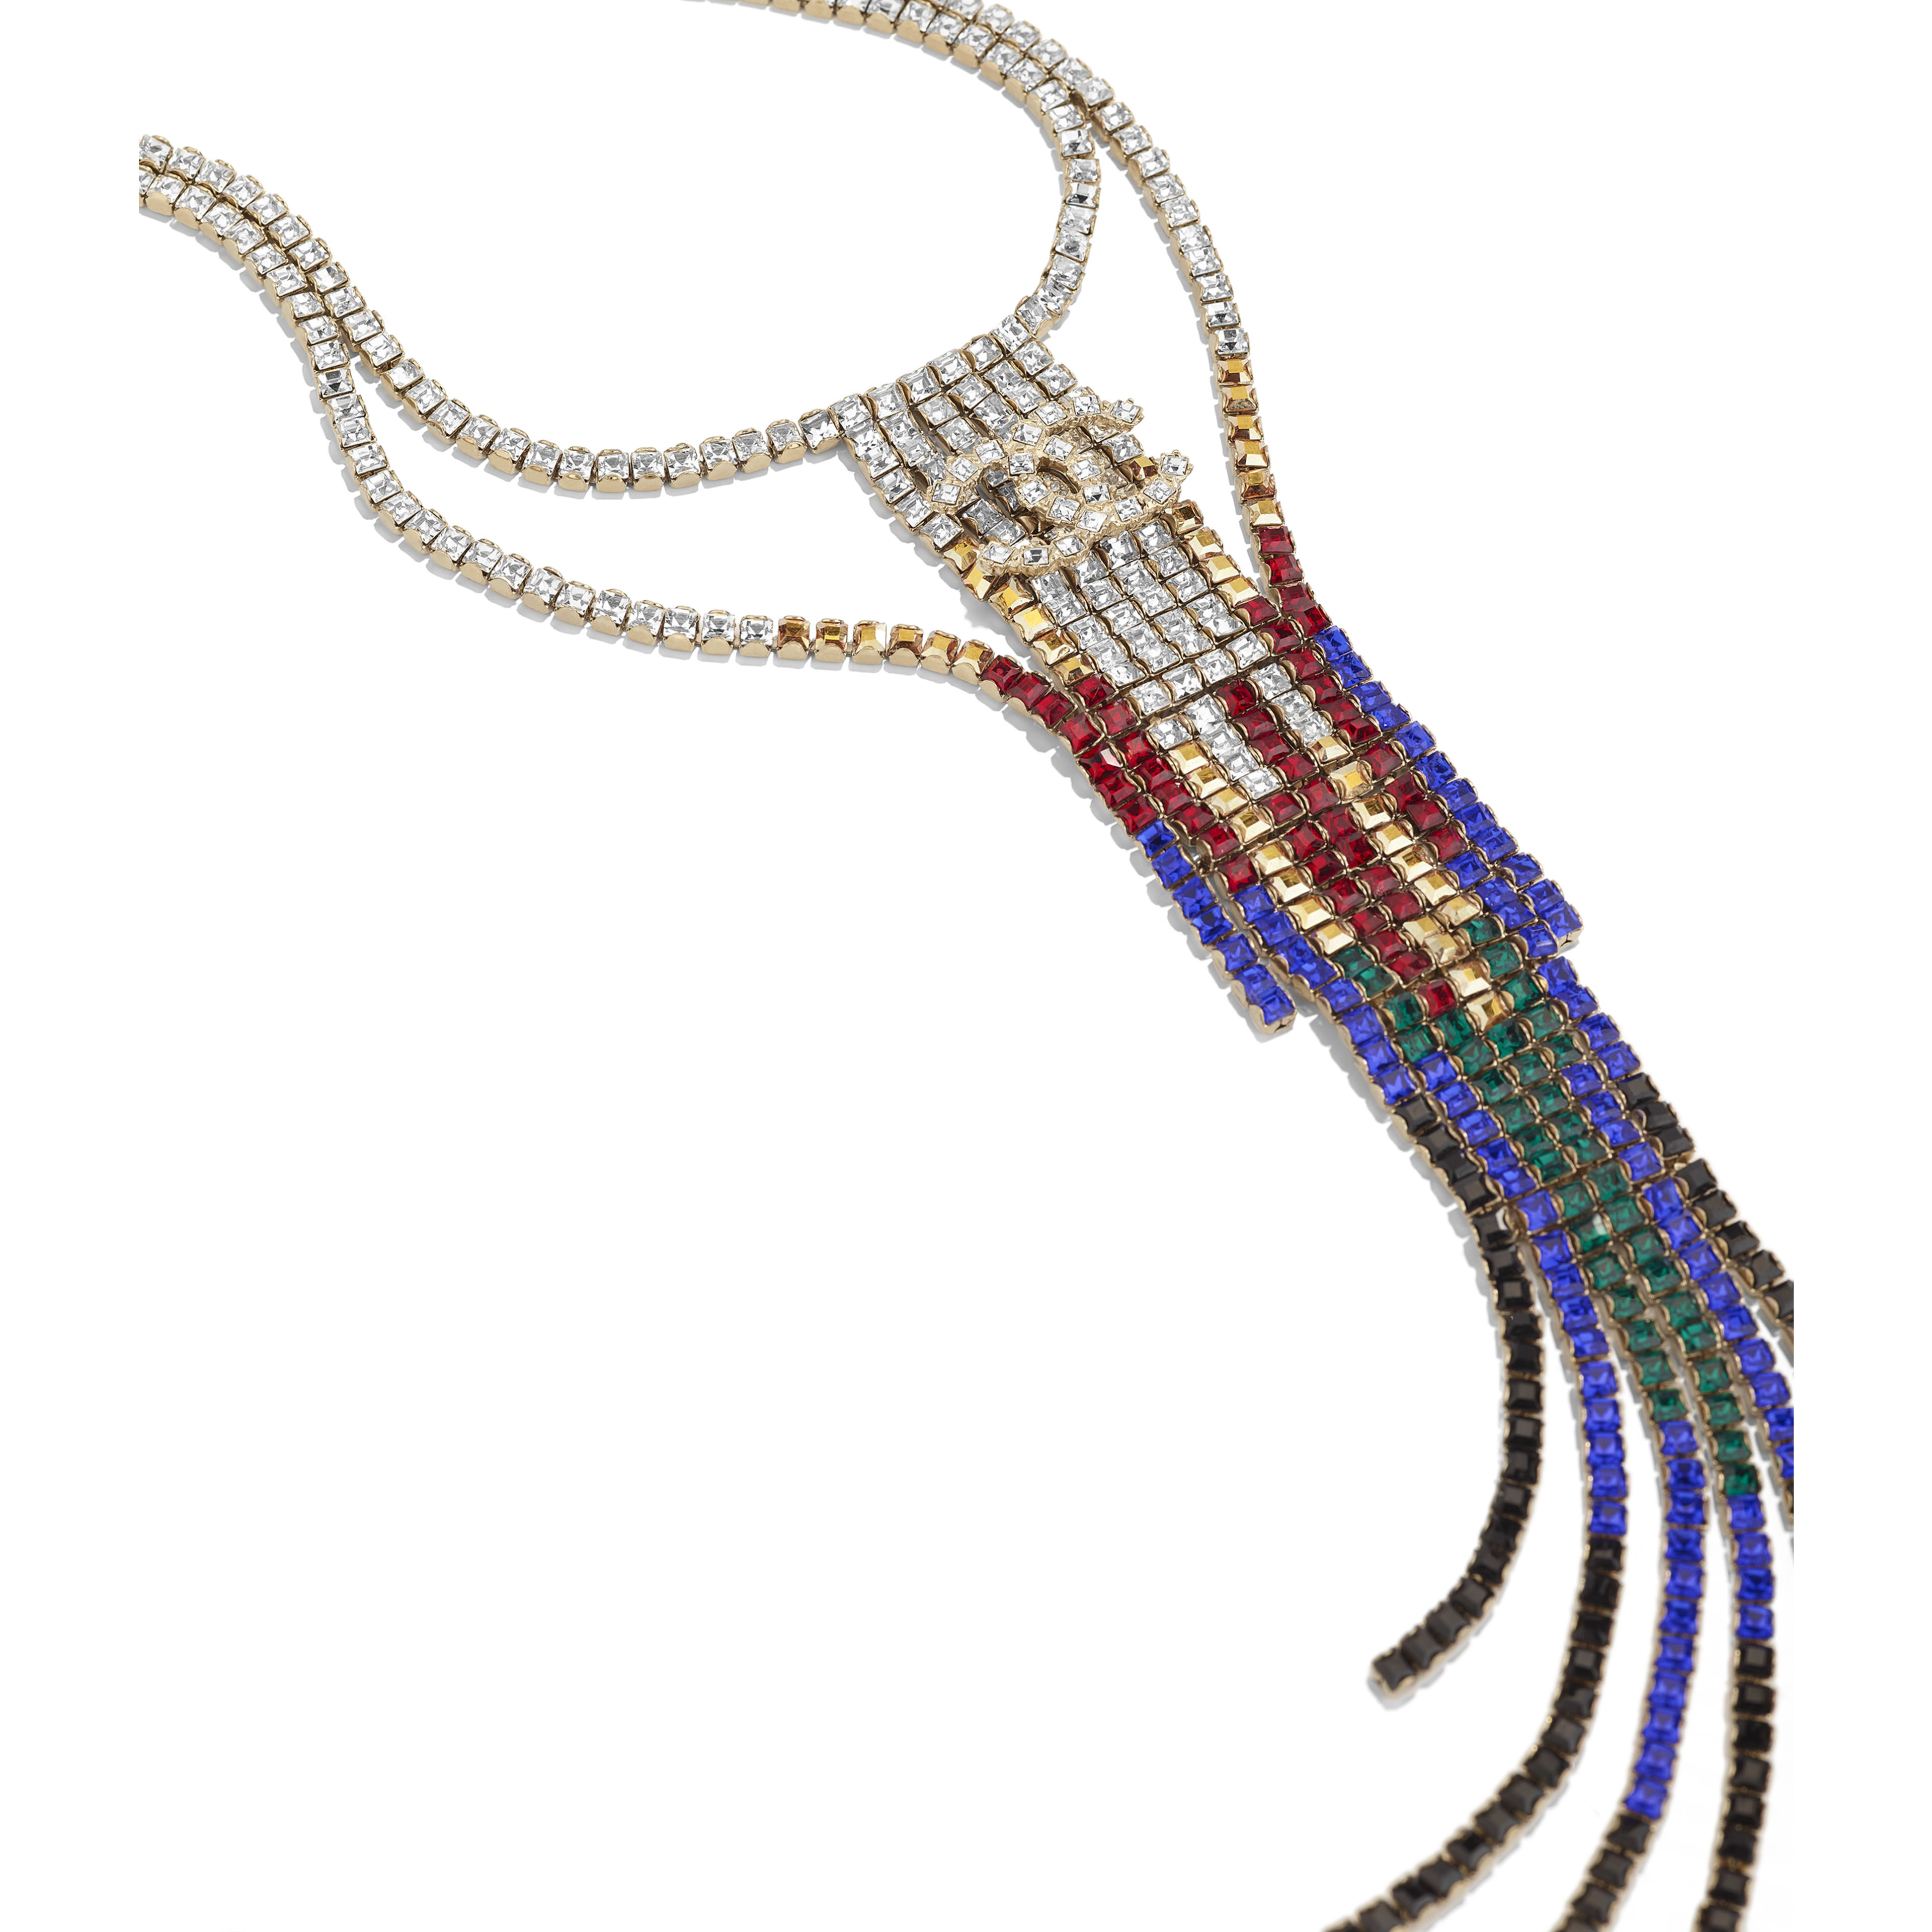 Necklace - Gold, Black, Red, Blue & Crystal - Metal & Strass - Alternative view - see full sized version